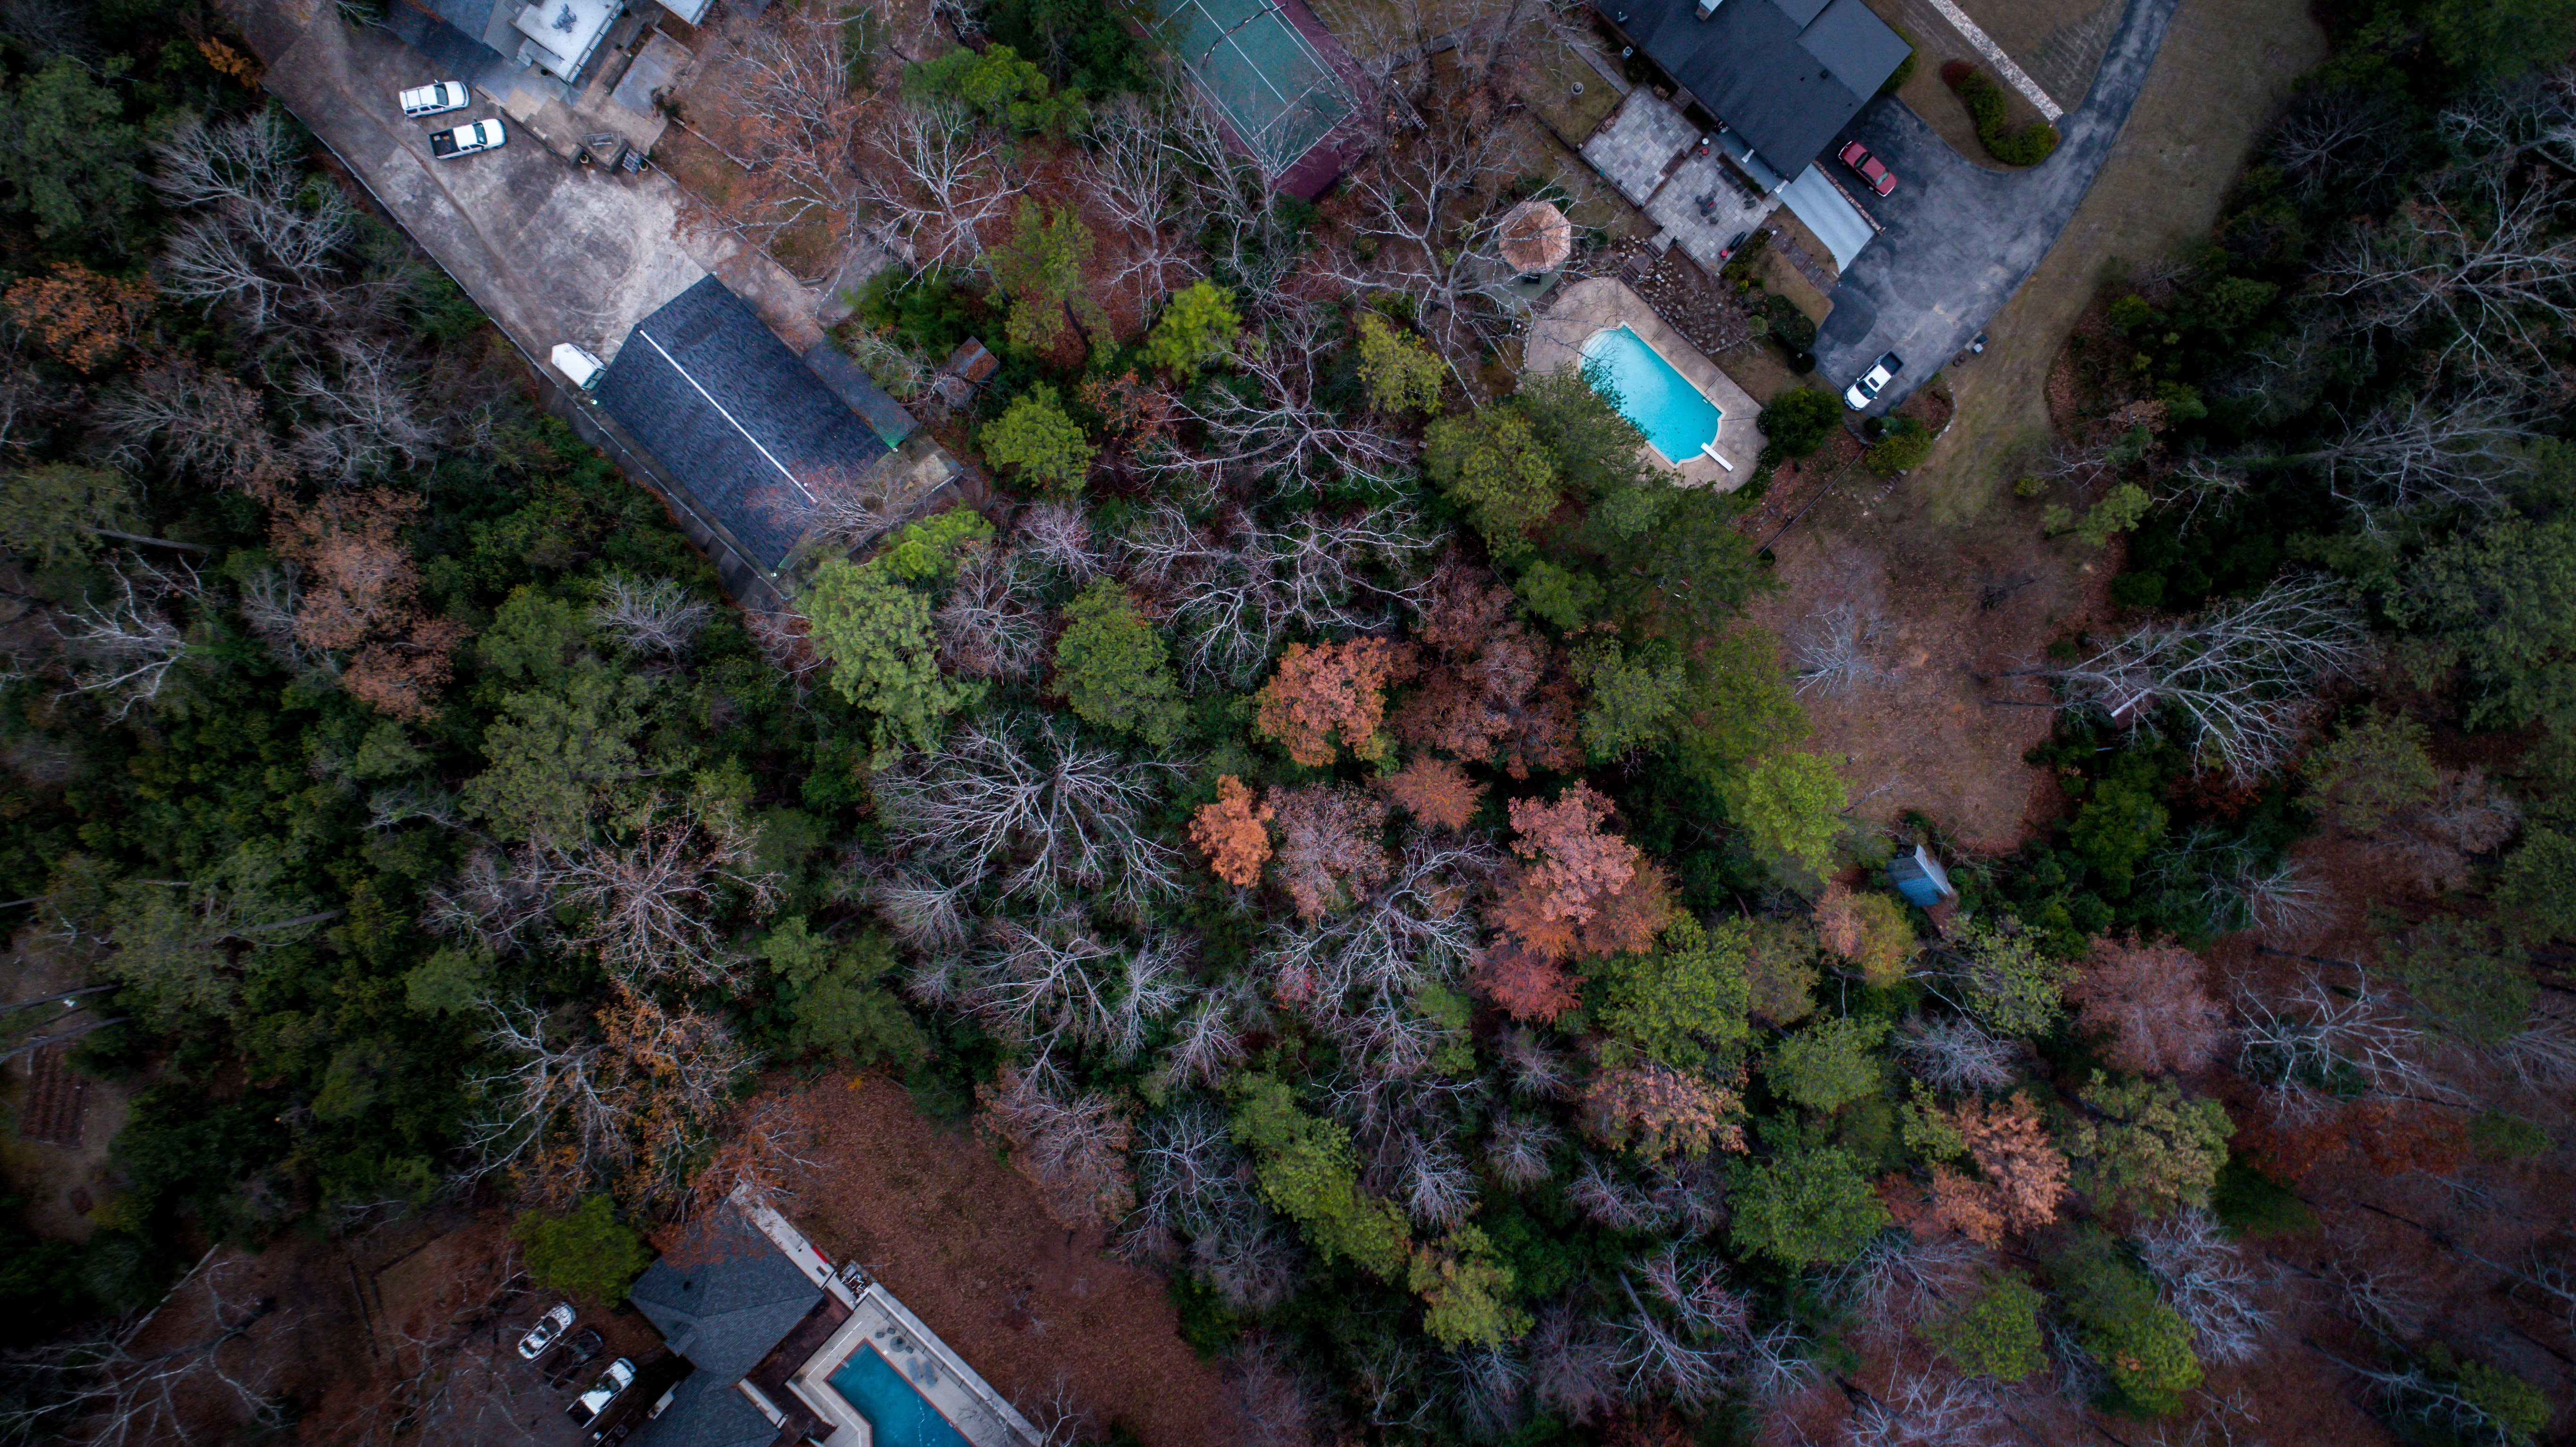 A drone shot of houses with pools at the edge of a forest in Birmingham, Alabama